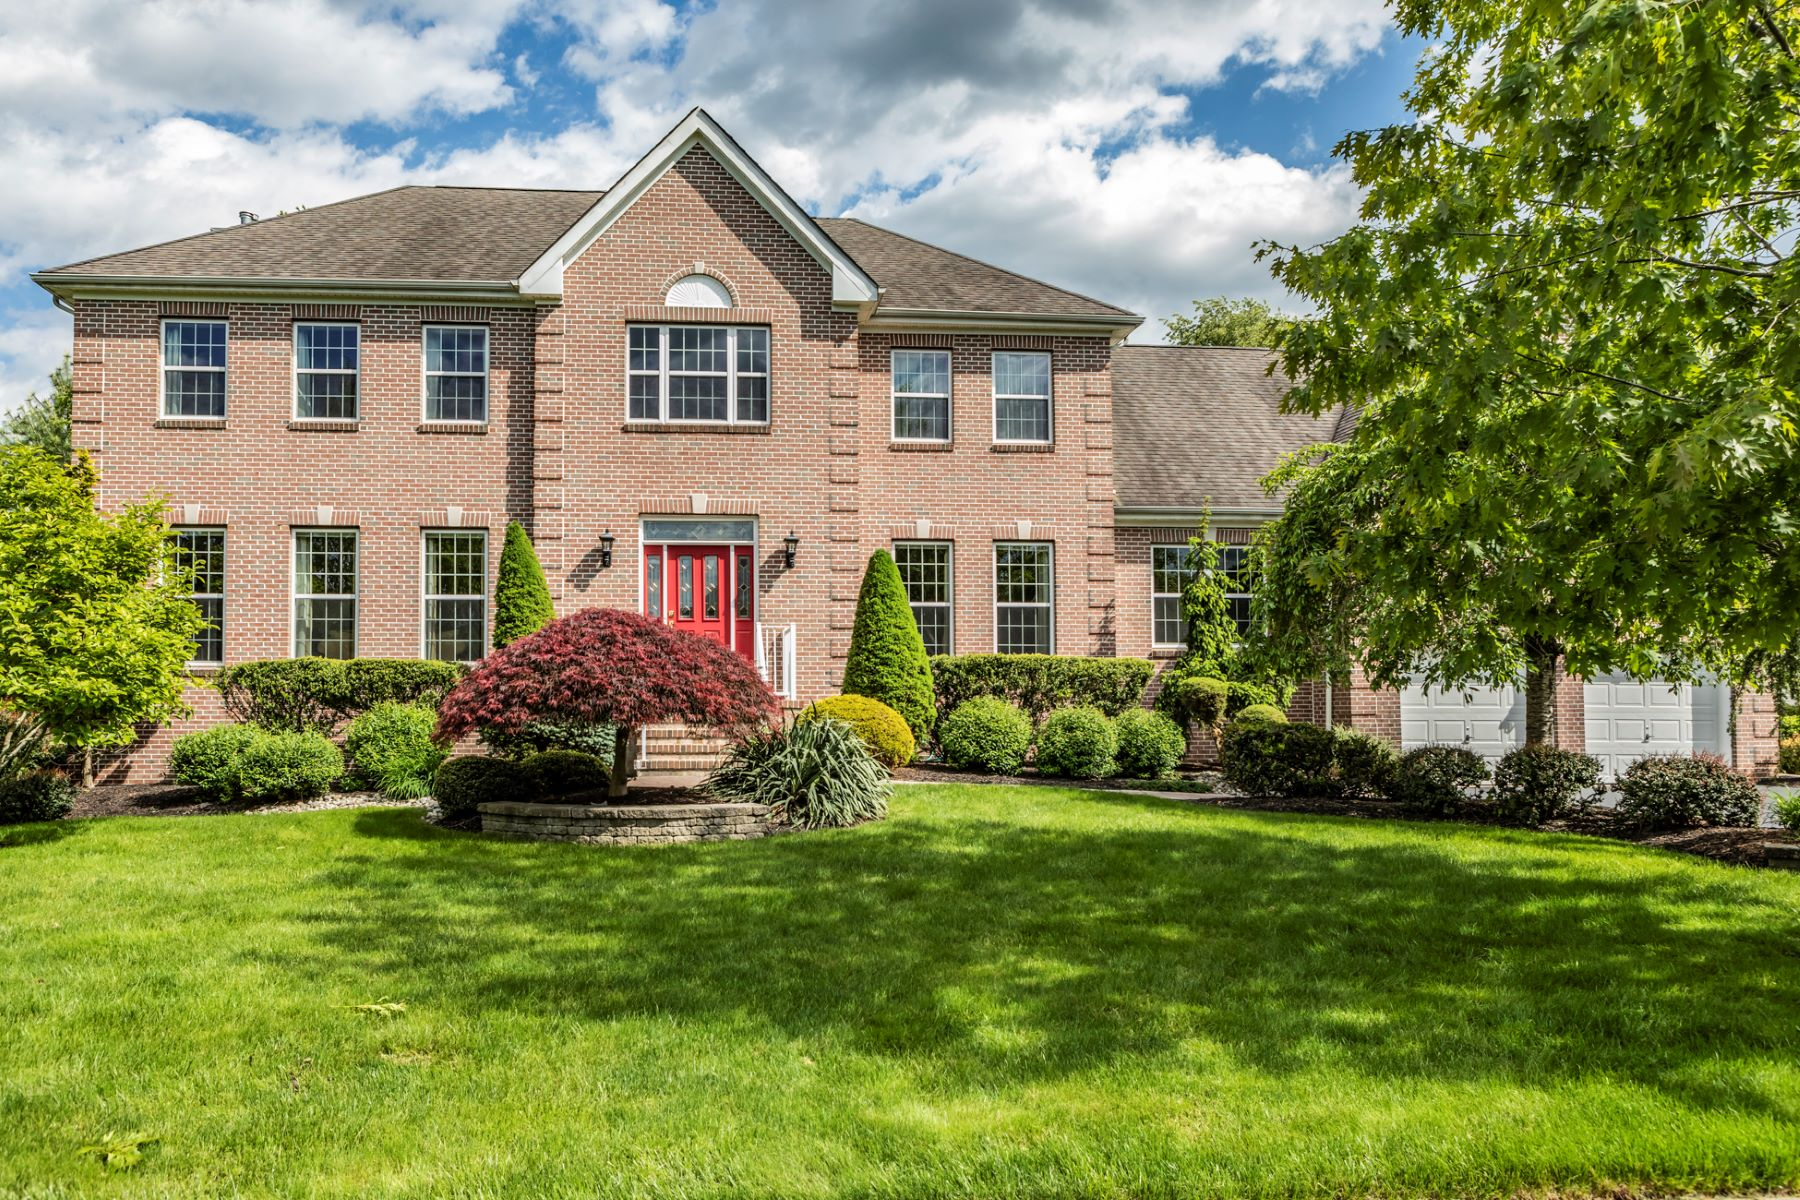 Perfection for Every Kind of Entertaining 5 Mahogany Court, Plainsboro, New Jersey 08536 Hoa Kỳ